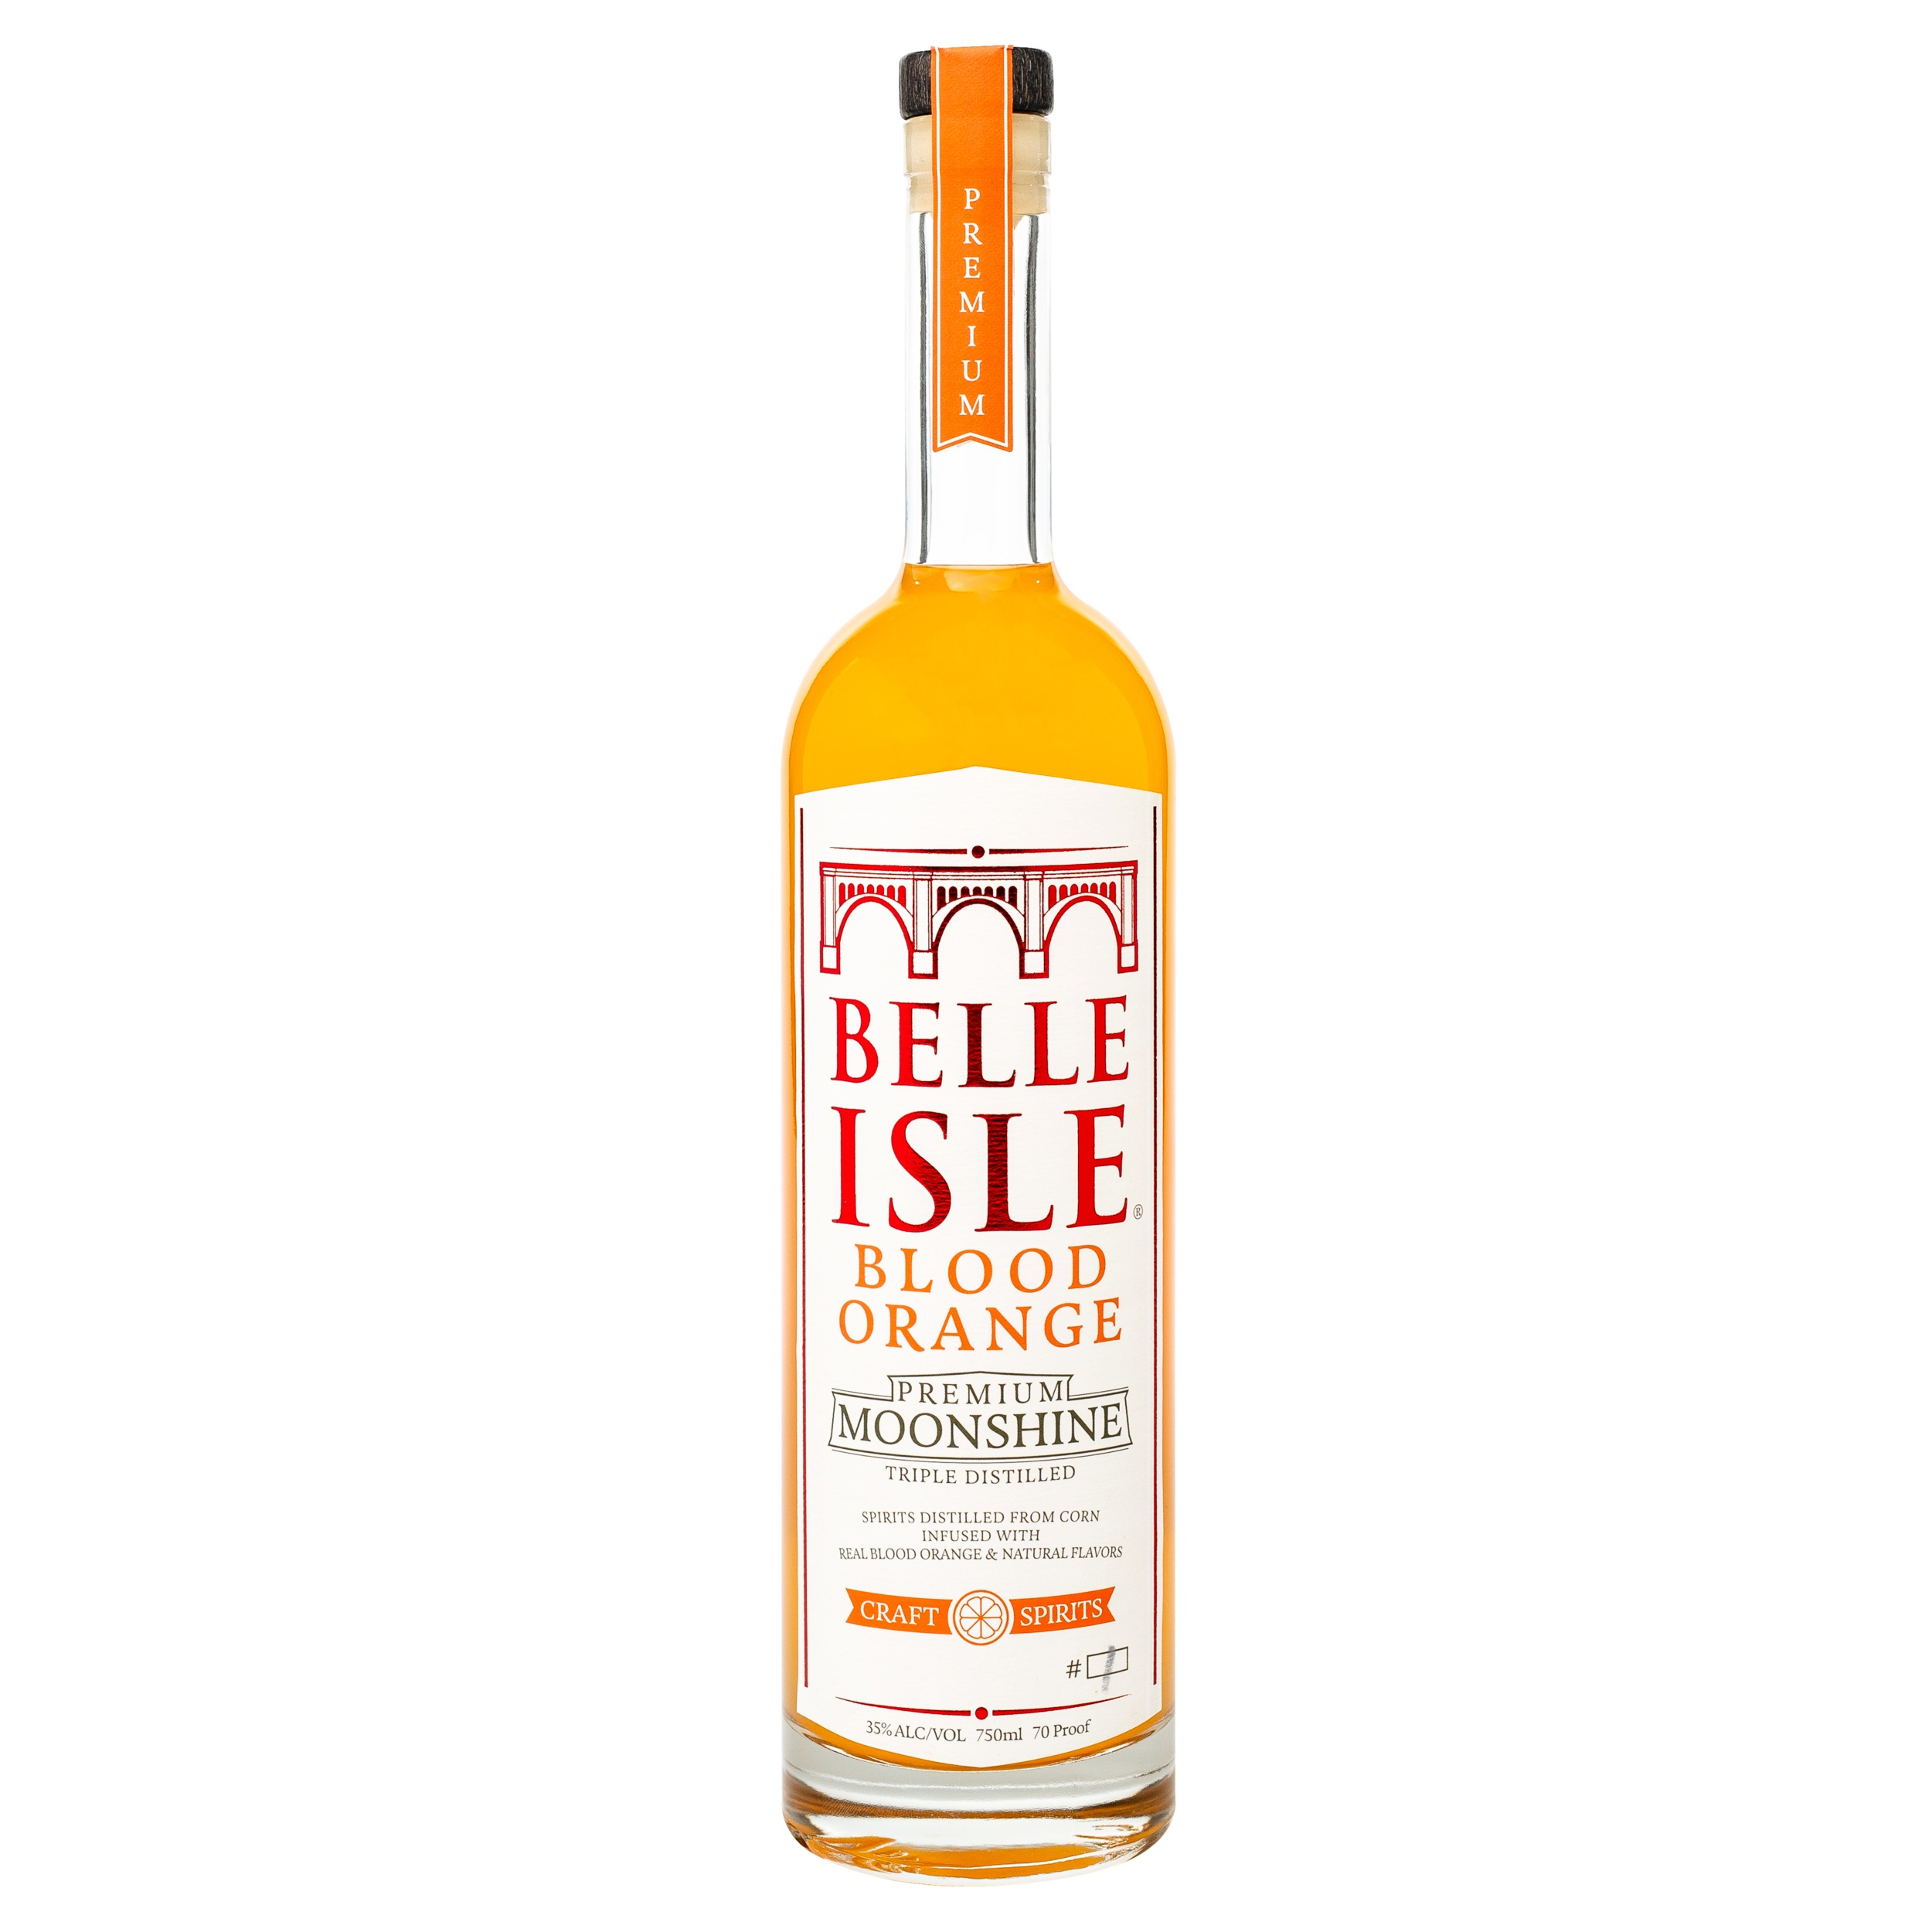 Belle+Isle+Bottle+Shot+-+Blood+Orange.jpg